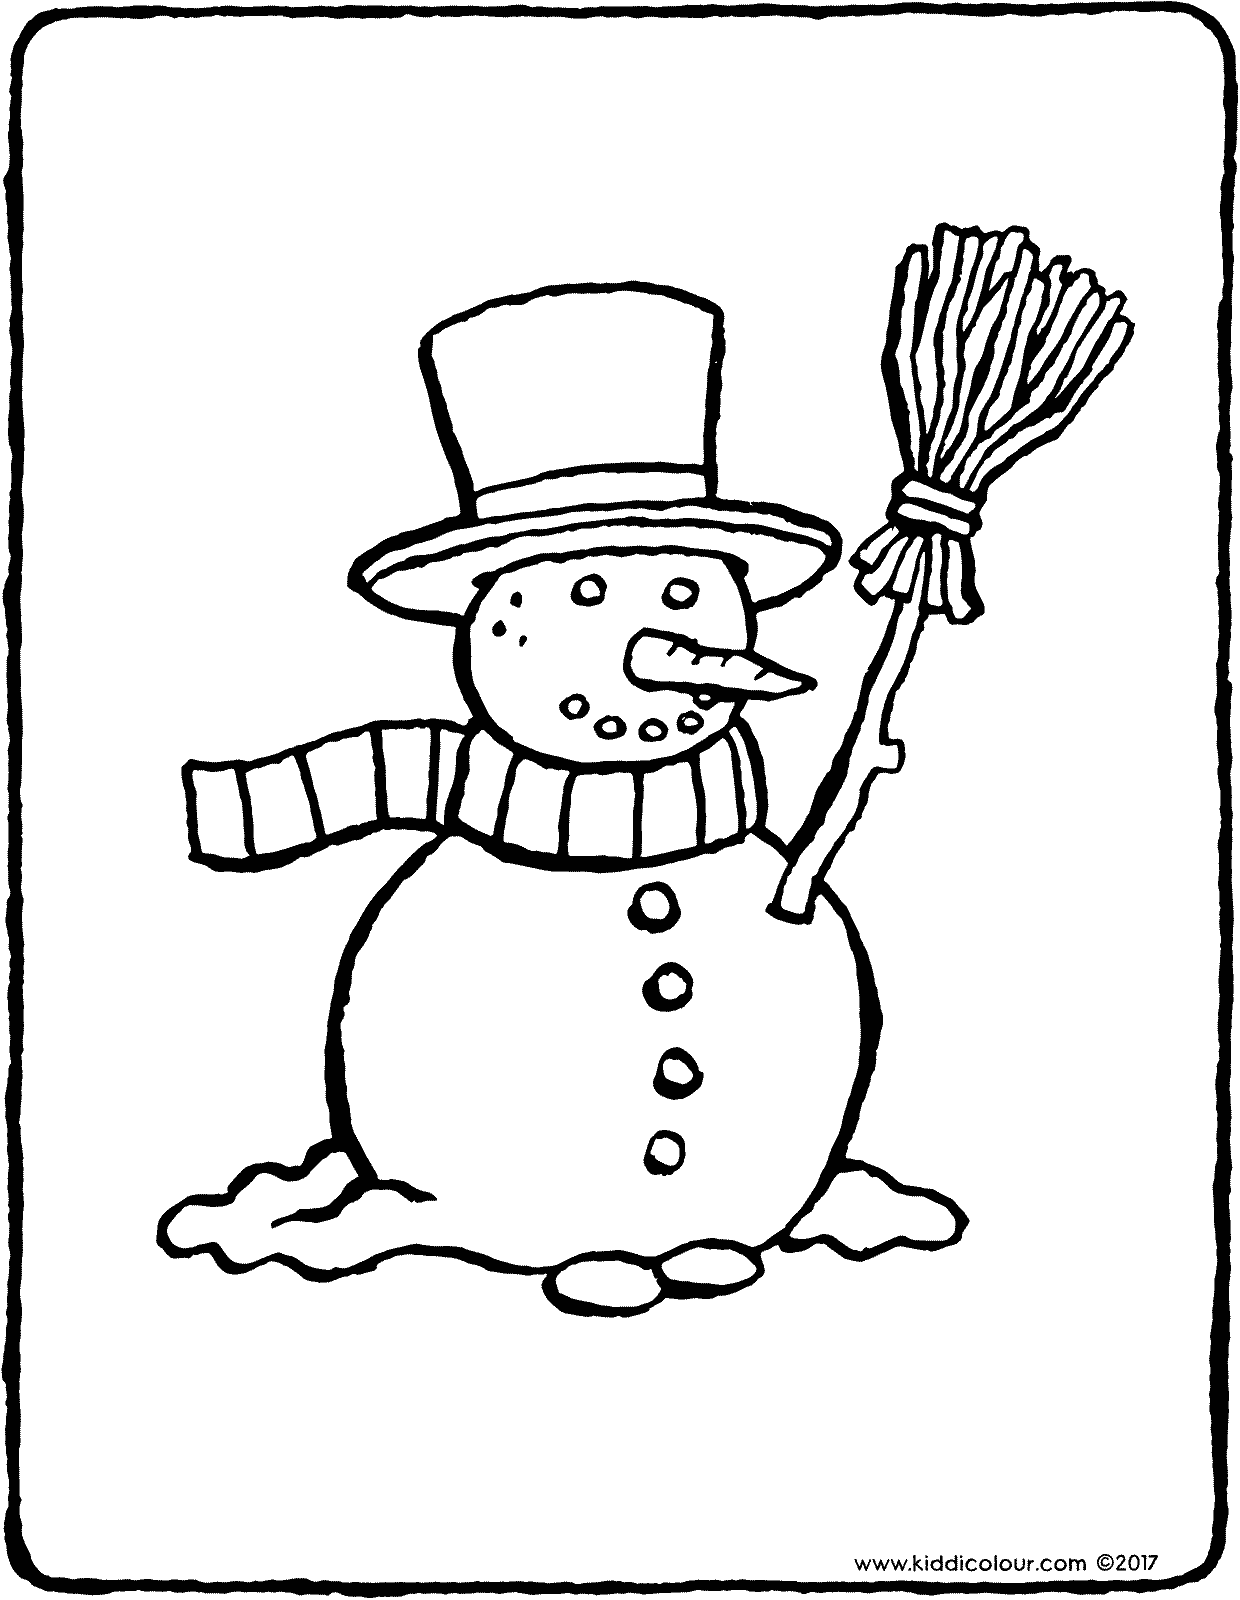 snowman with broom colouring page page drawing picture 02V